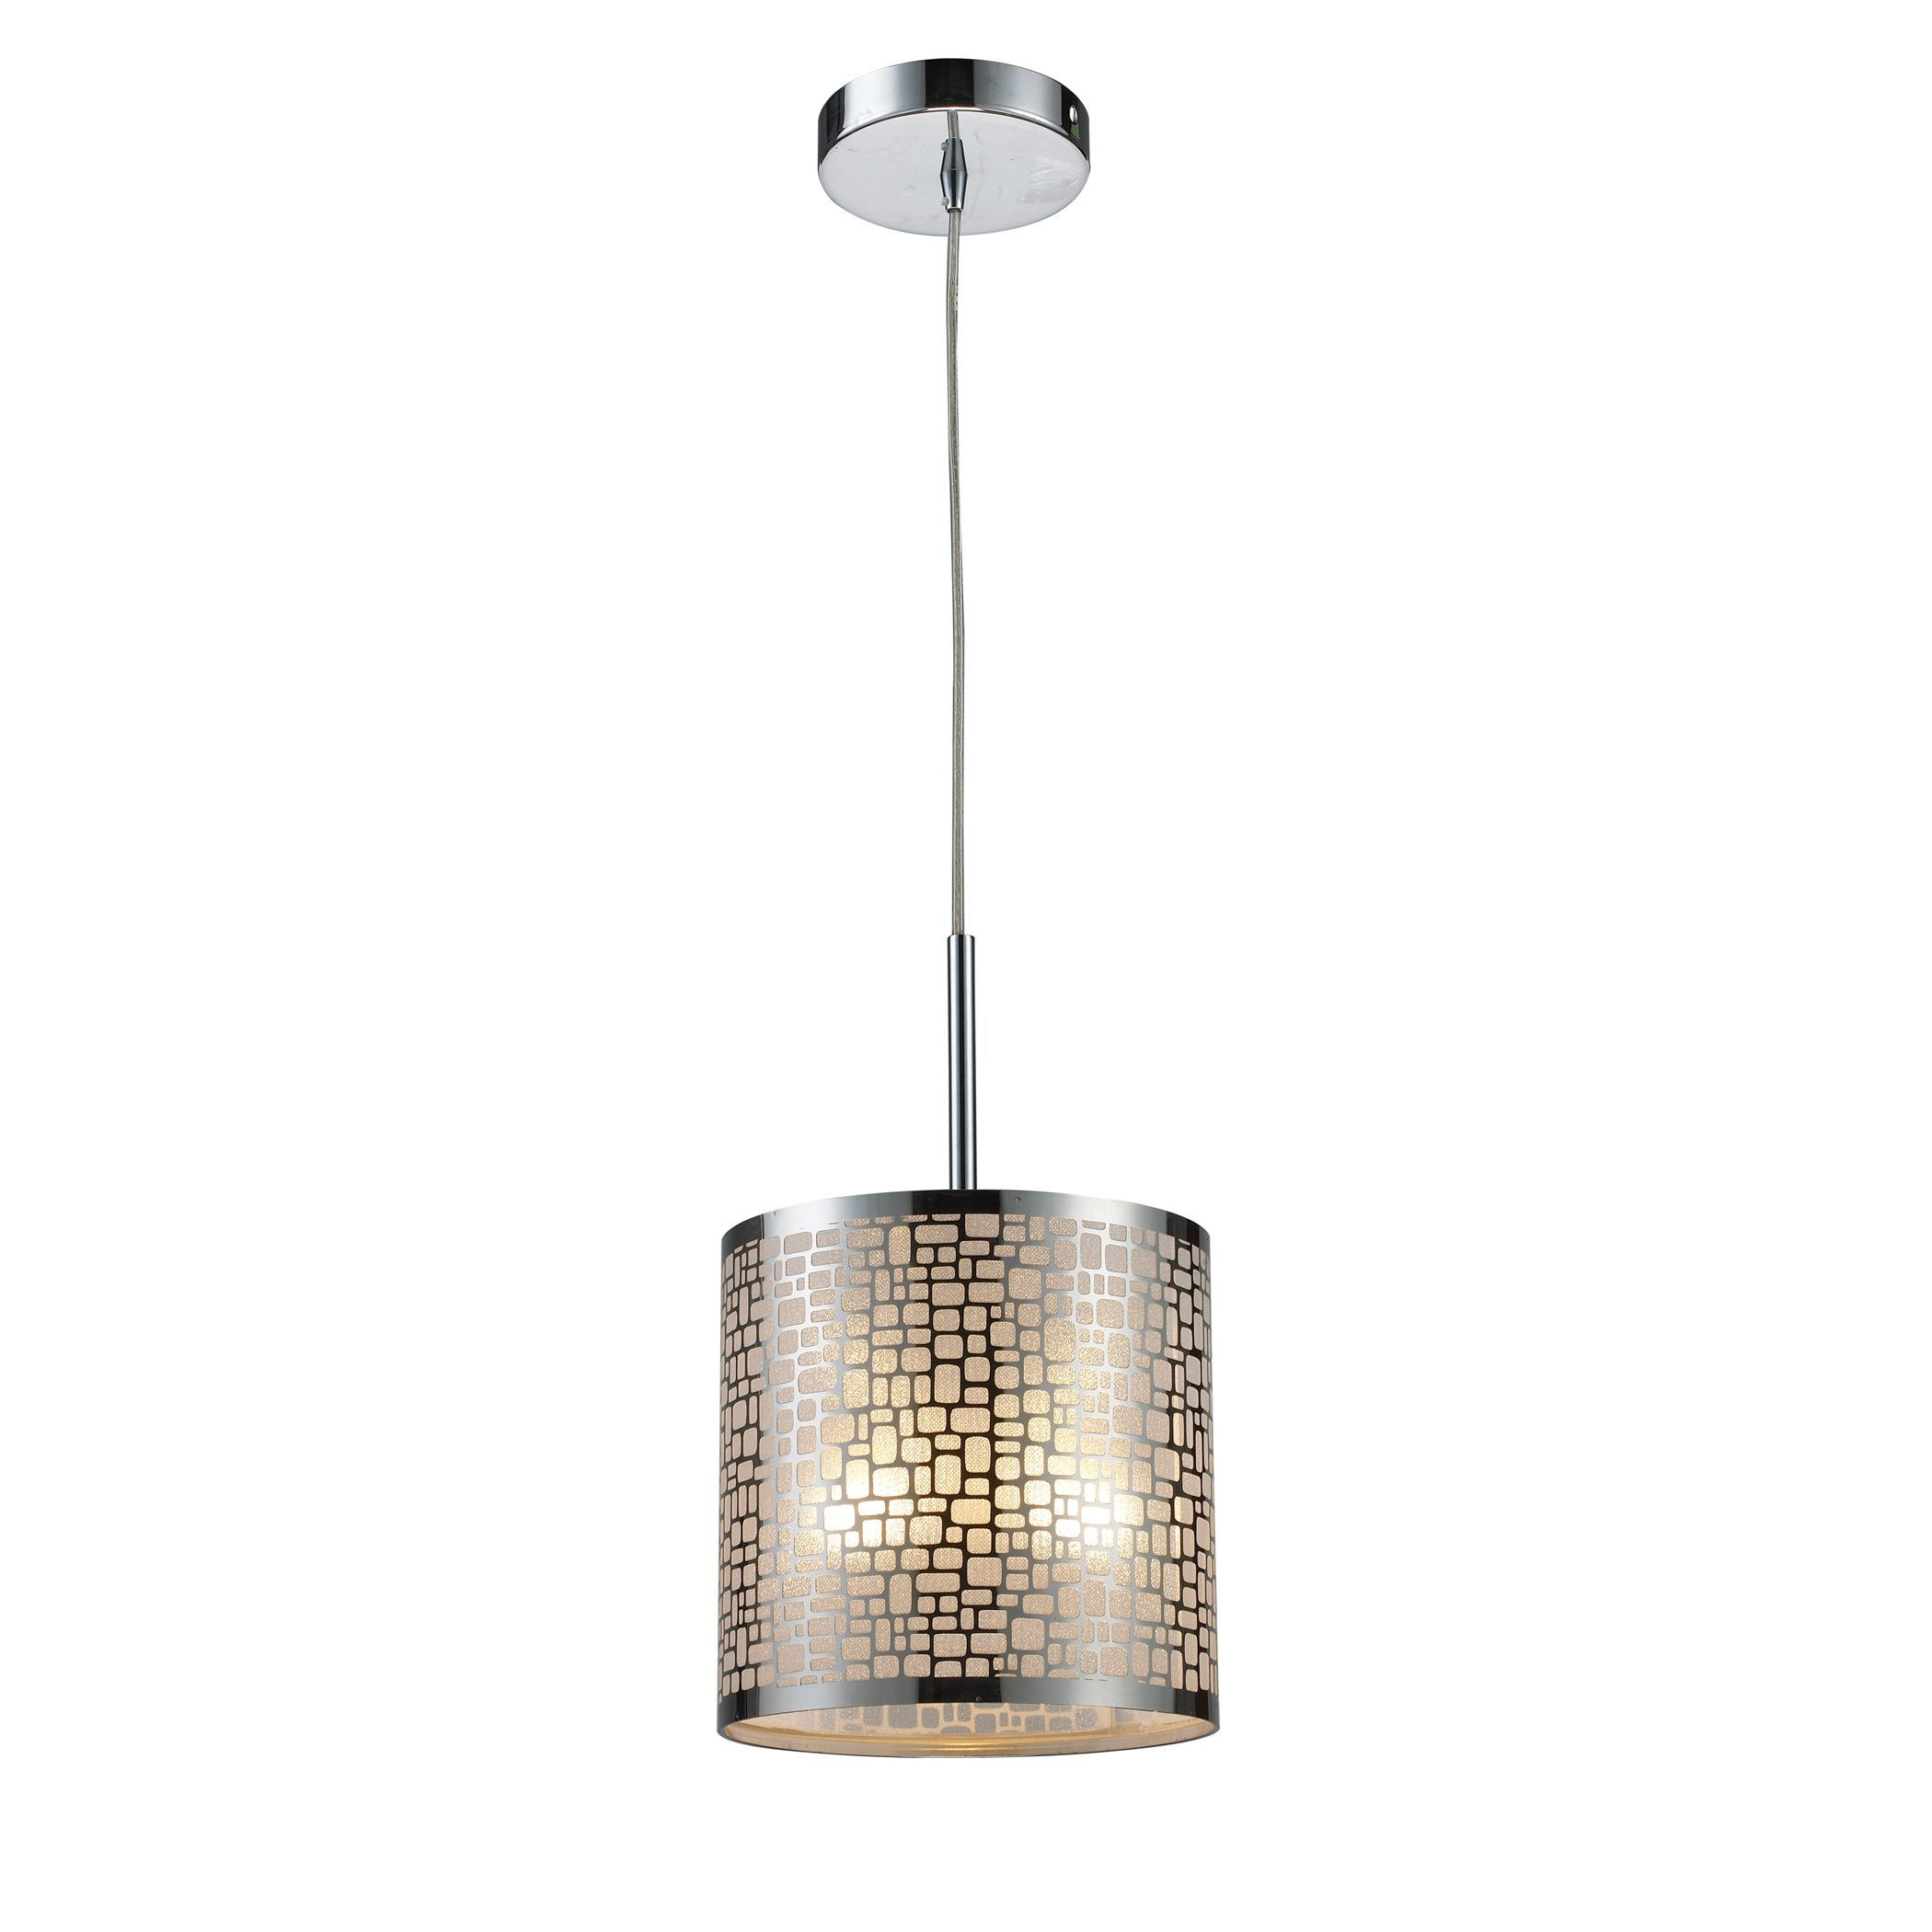 Elk lighting medina 1 light polished stainless steel pendant elk lighting medina 1 light polished stainless steel pendant polished stainless steel led arubaitofo Image collections